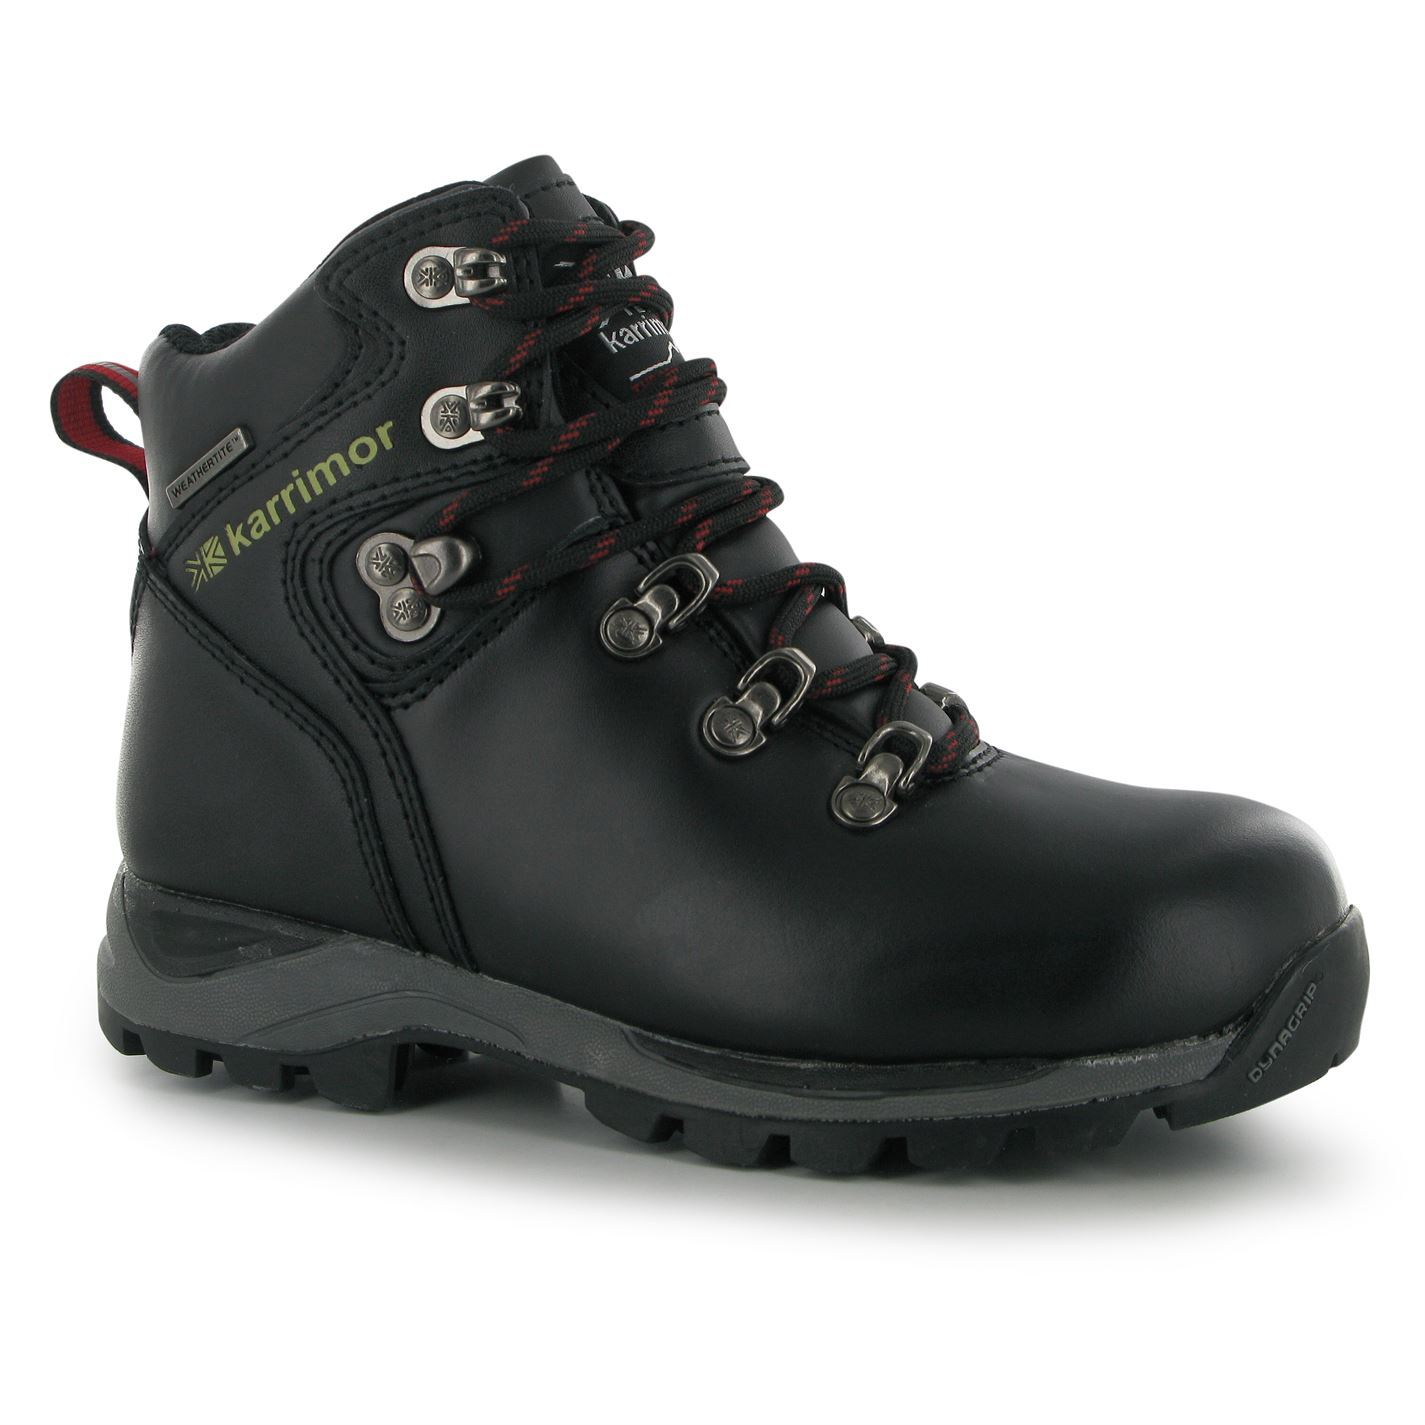 Karrimor Kids Skido Junior Walking Boots Waterproof Hiking ...